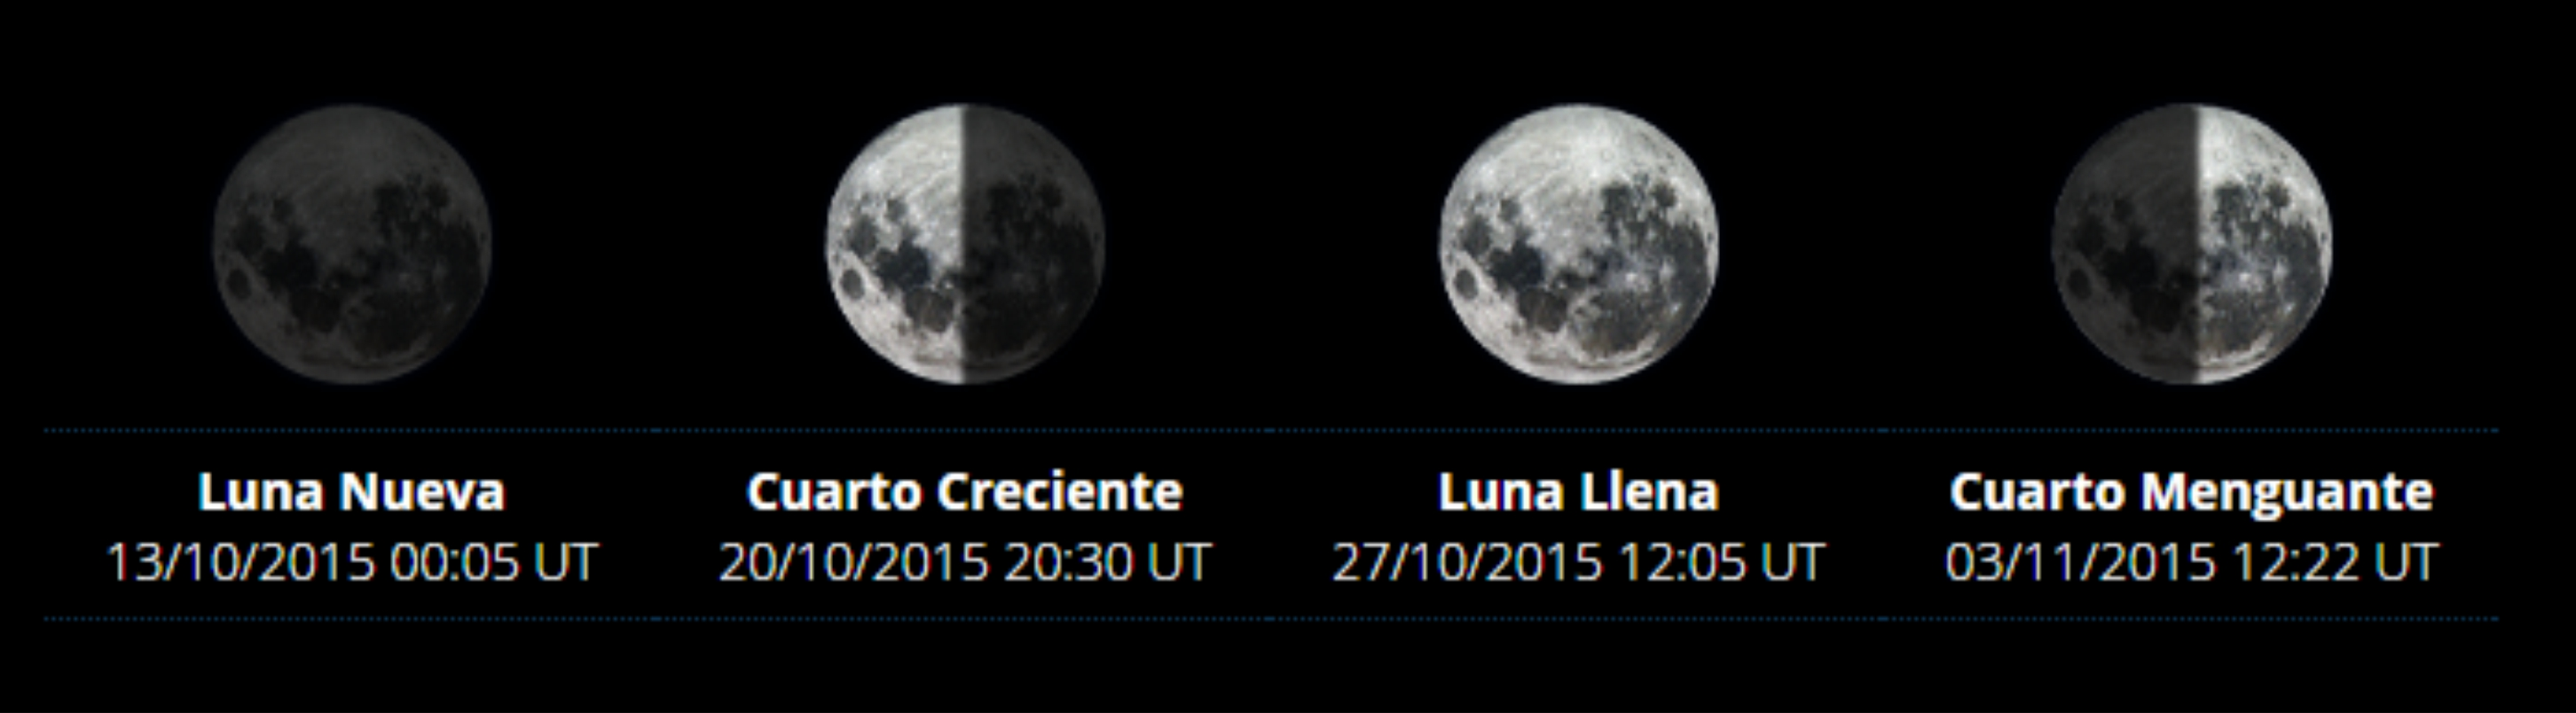 Lunar 2016 Related Keywords & Suggestions - Calendario Lunar 2016 ...